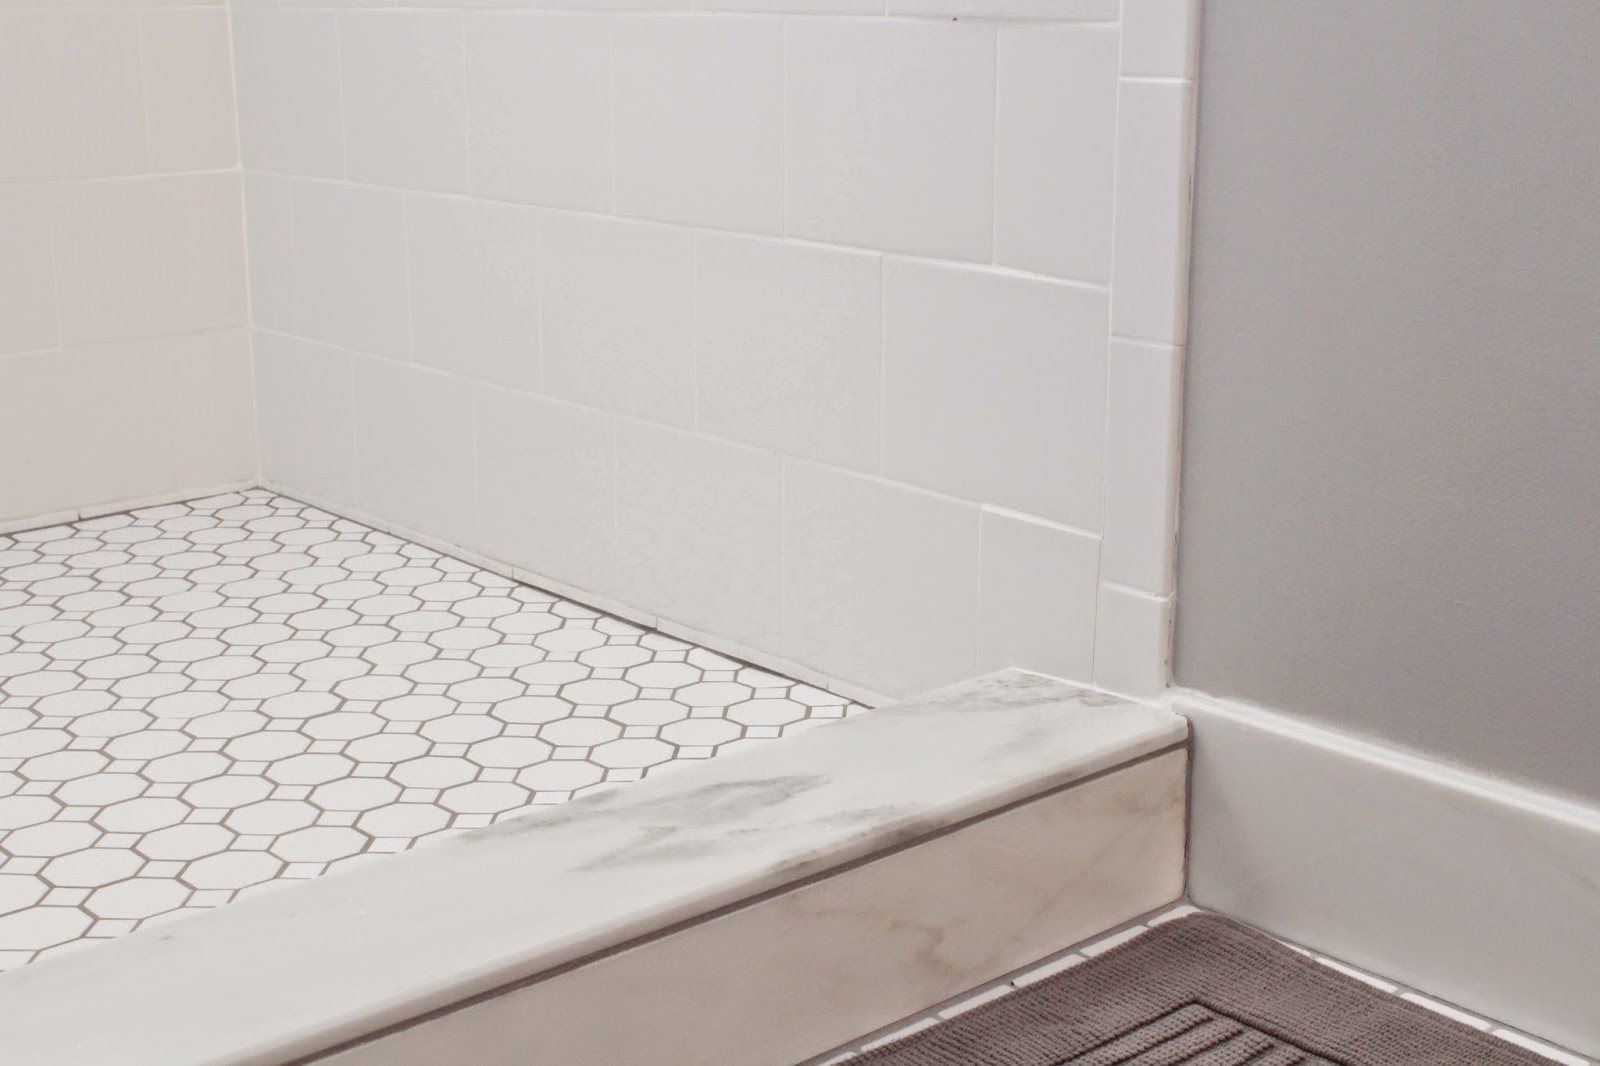 Best Shower Curb Tile Or Marble | o2 Pilates AE51